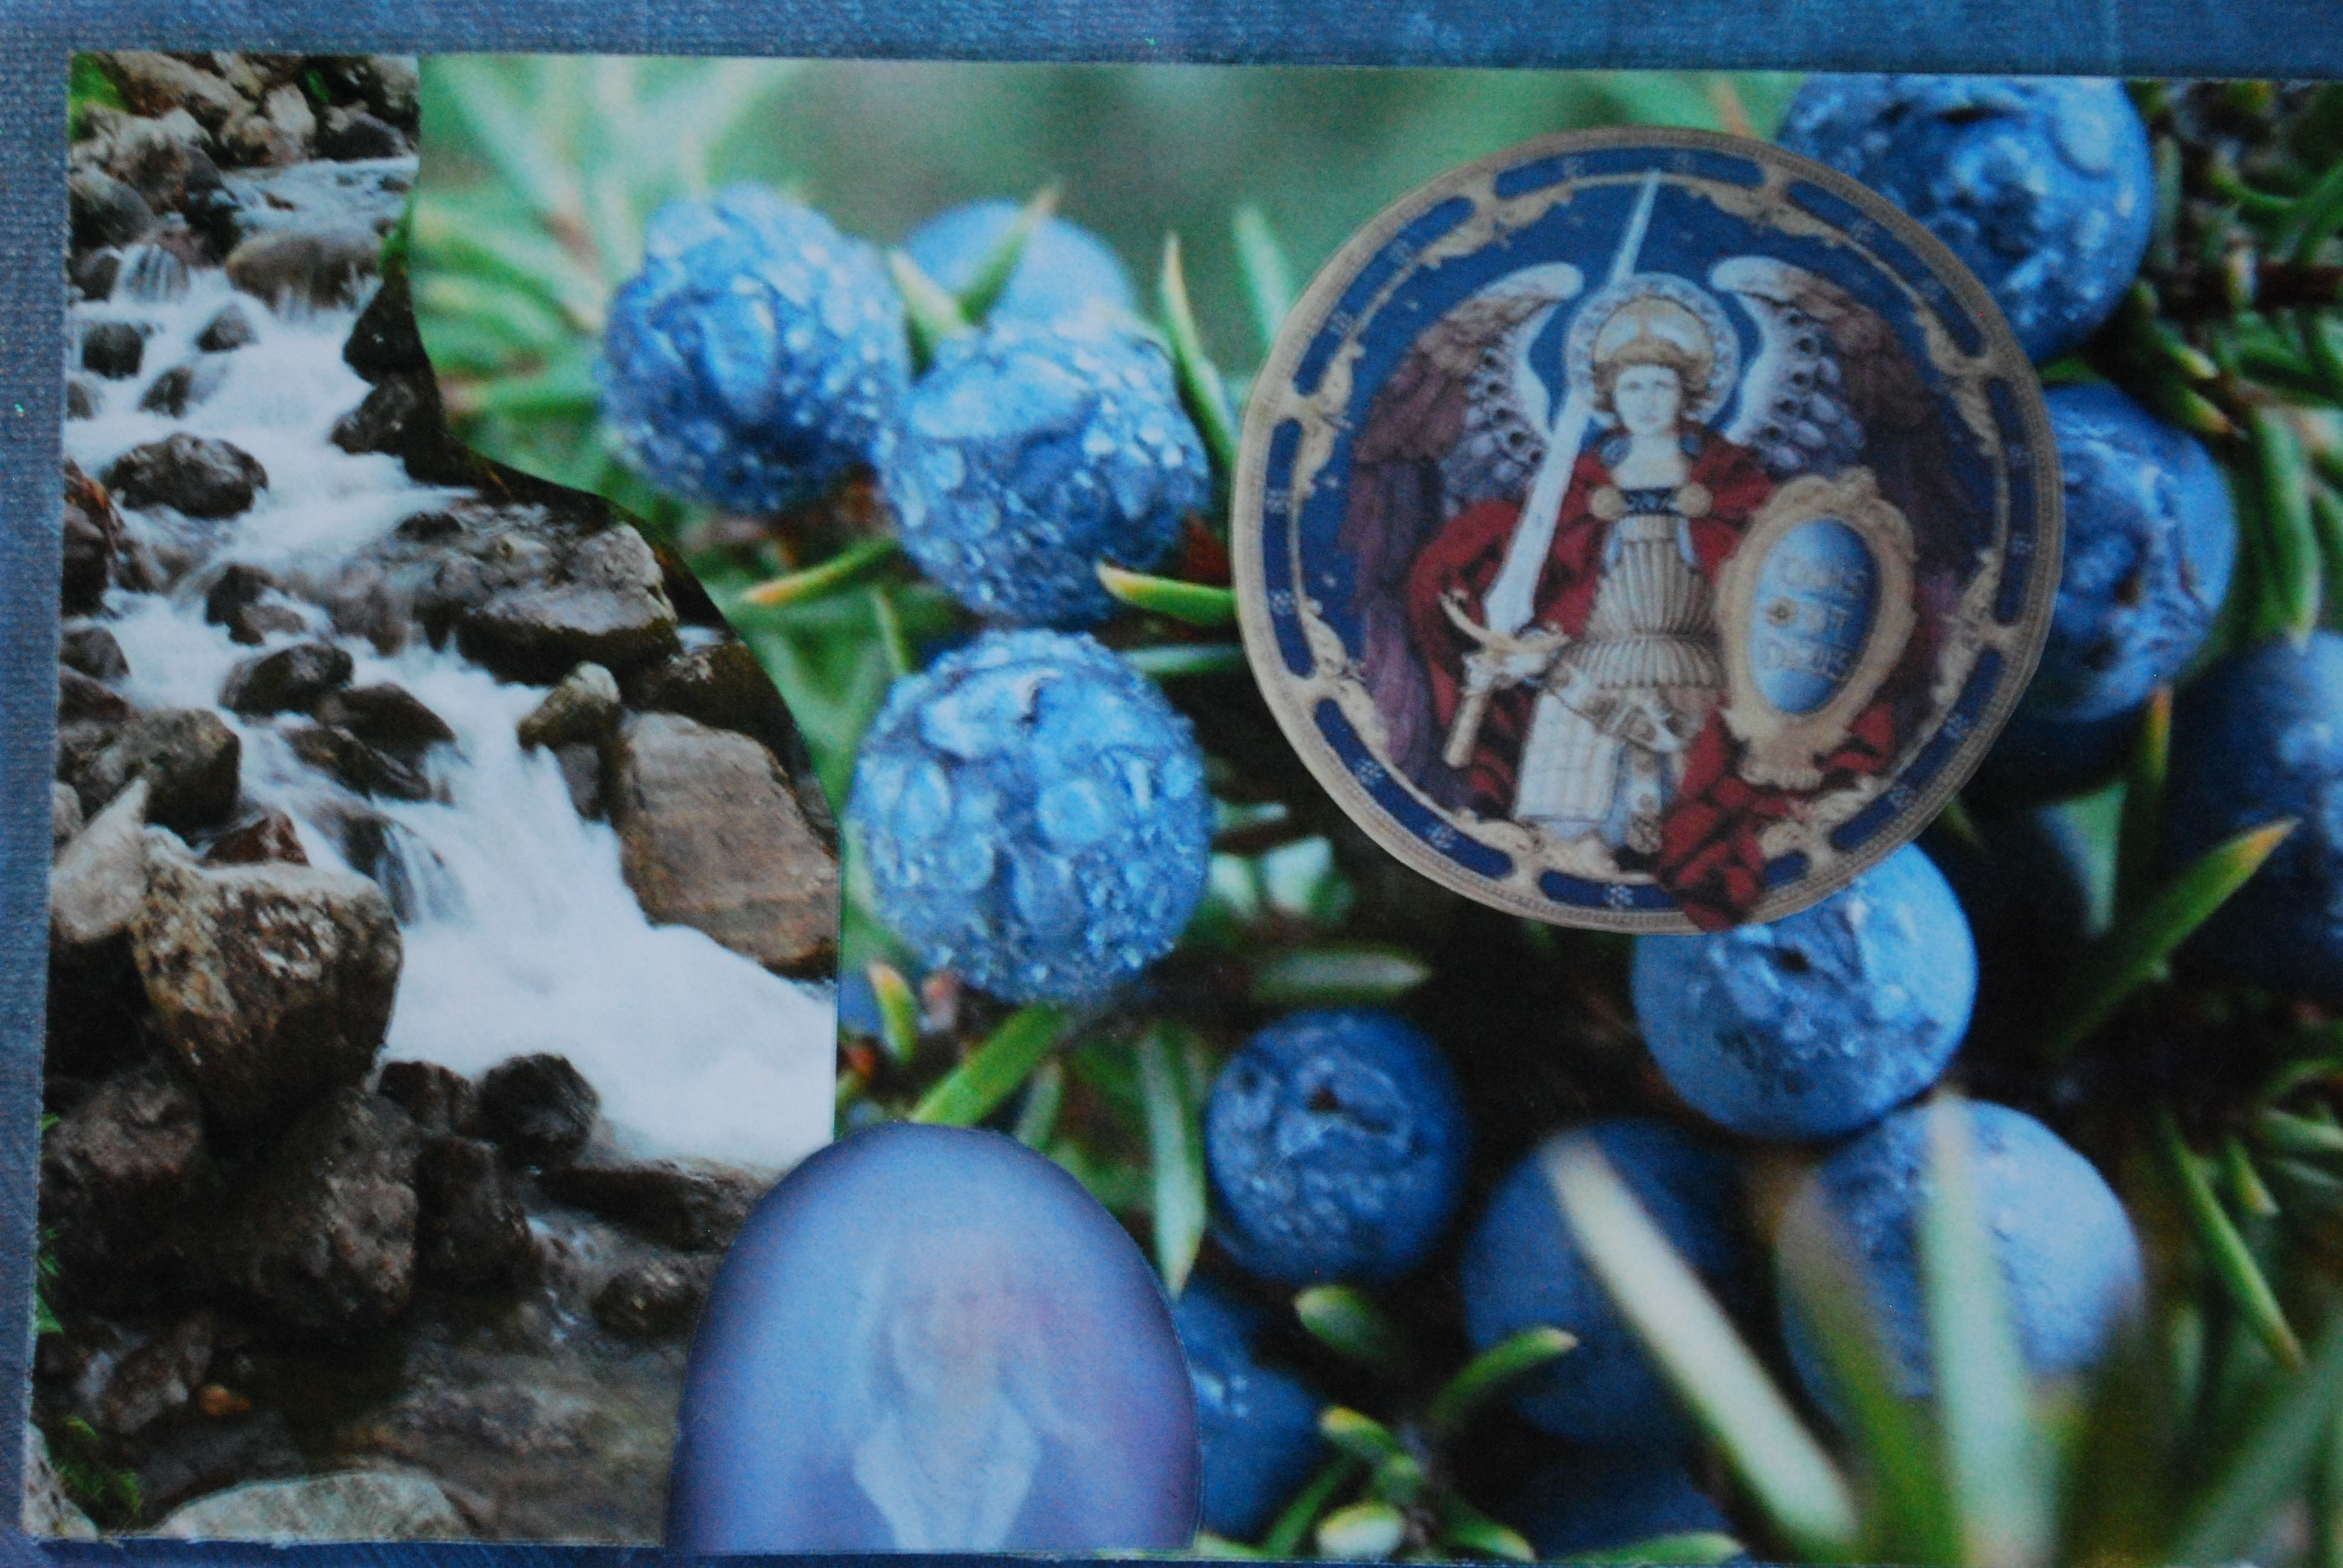 Juniper Berry Aromatic Wisdom Insight Card.   I guard and protect you from negative influences. I keep your gentle spirit safe so you may be of greater service.